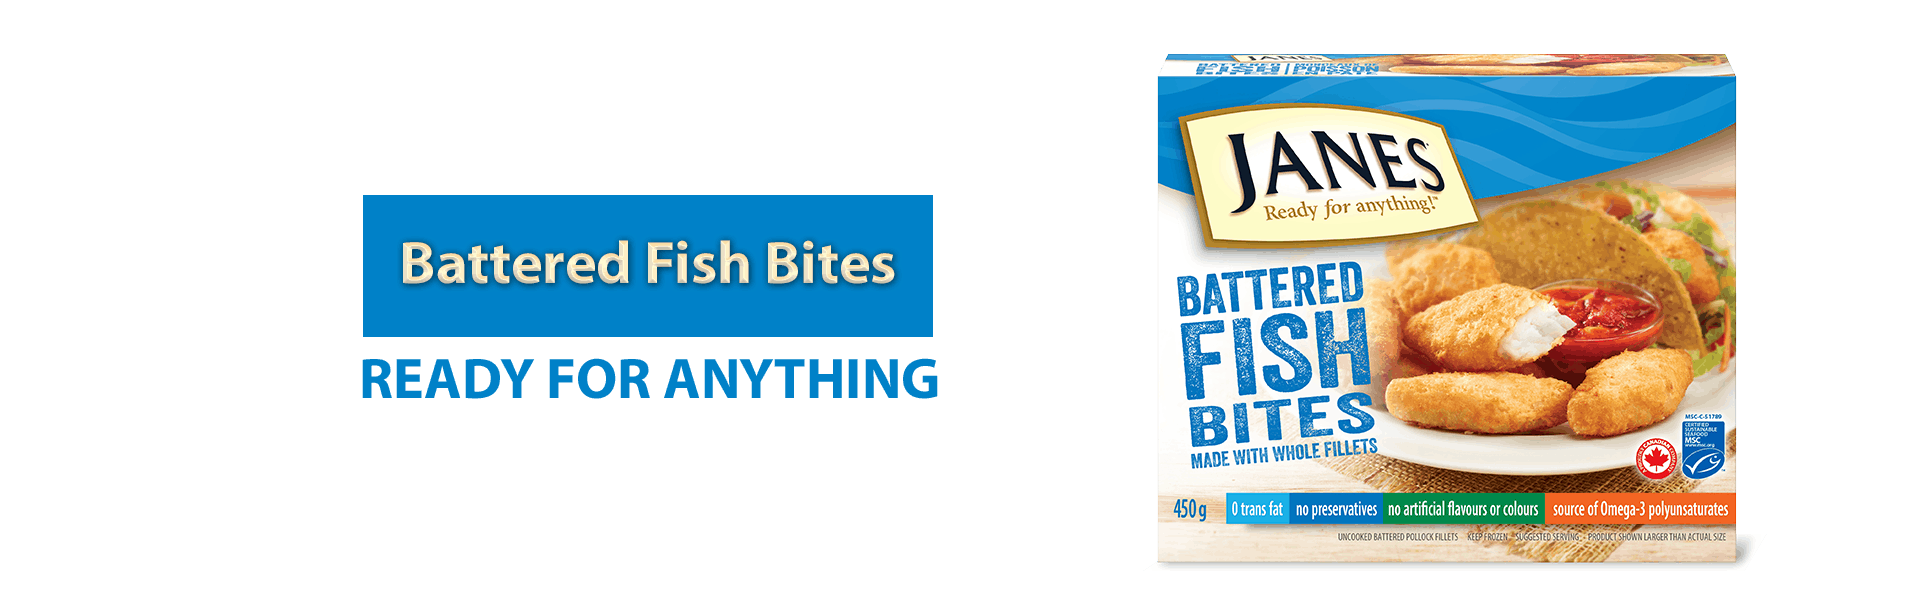 Battered Fish Bites